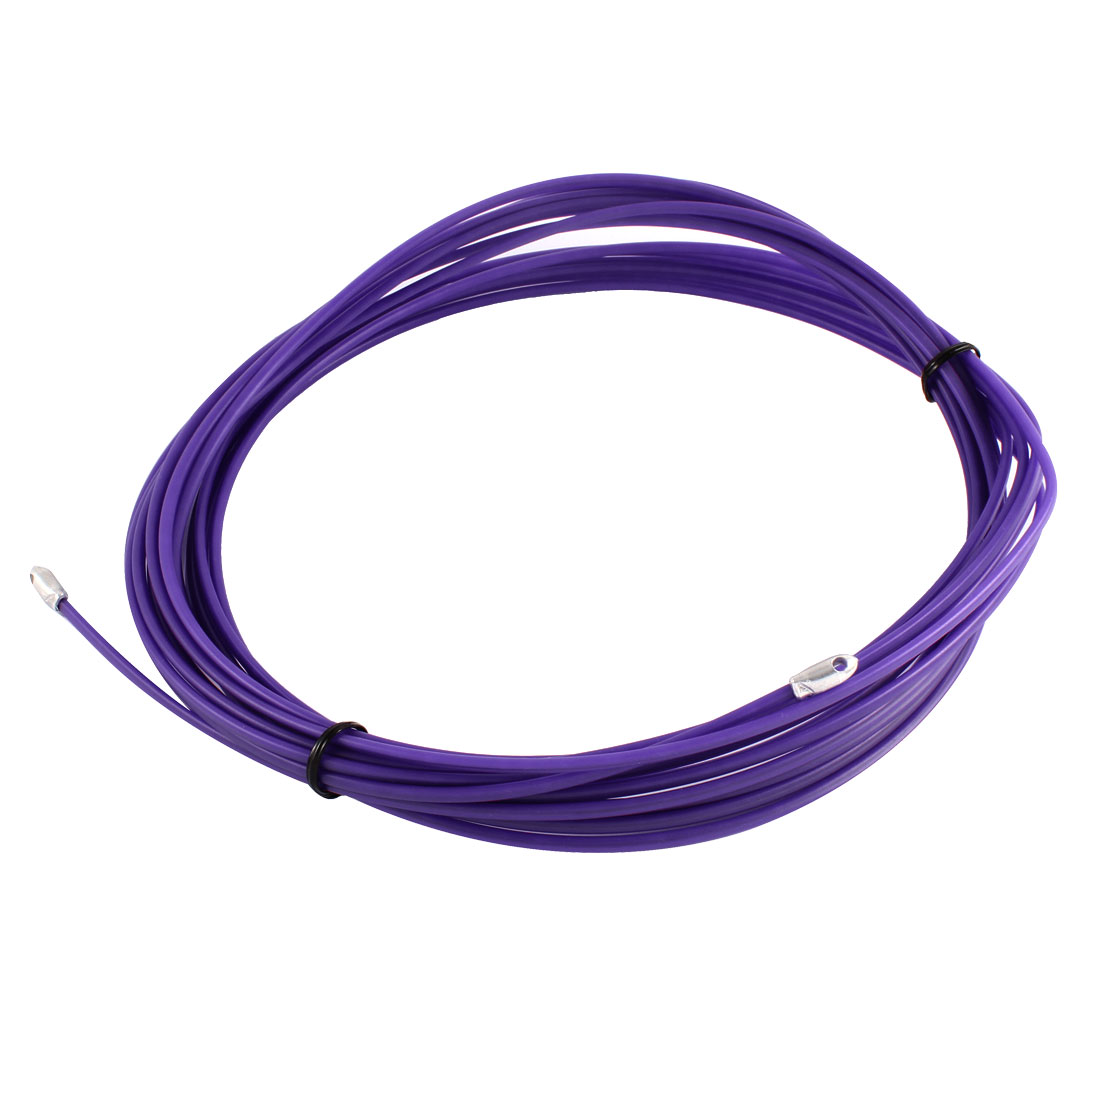 30Ft 9m Length 3mm Dia Purple Electrical Wire Threader Cable Cord Puller Pulling